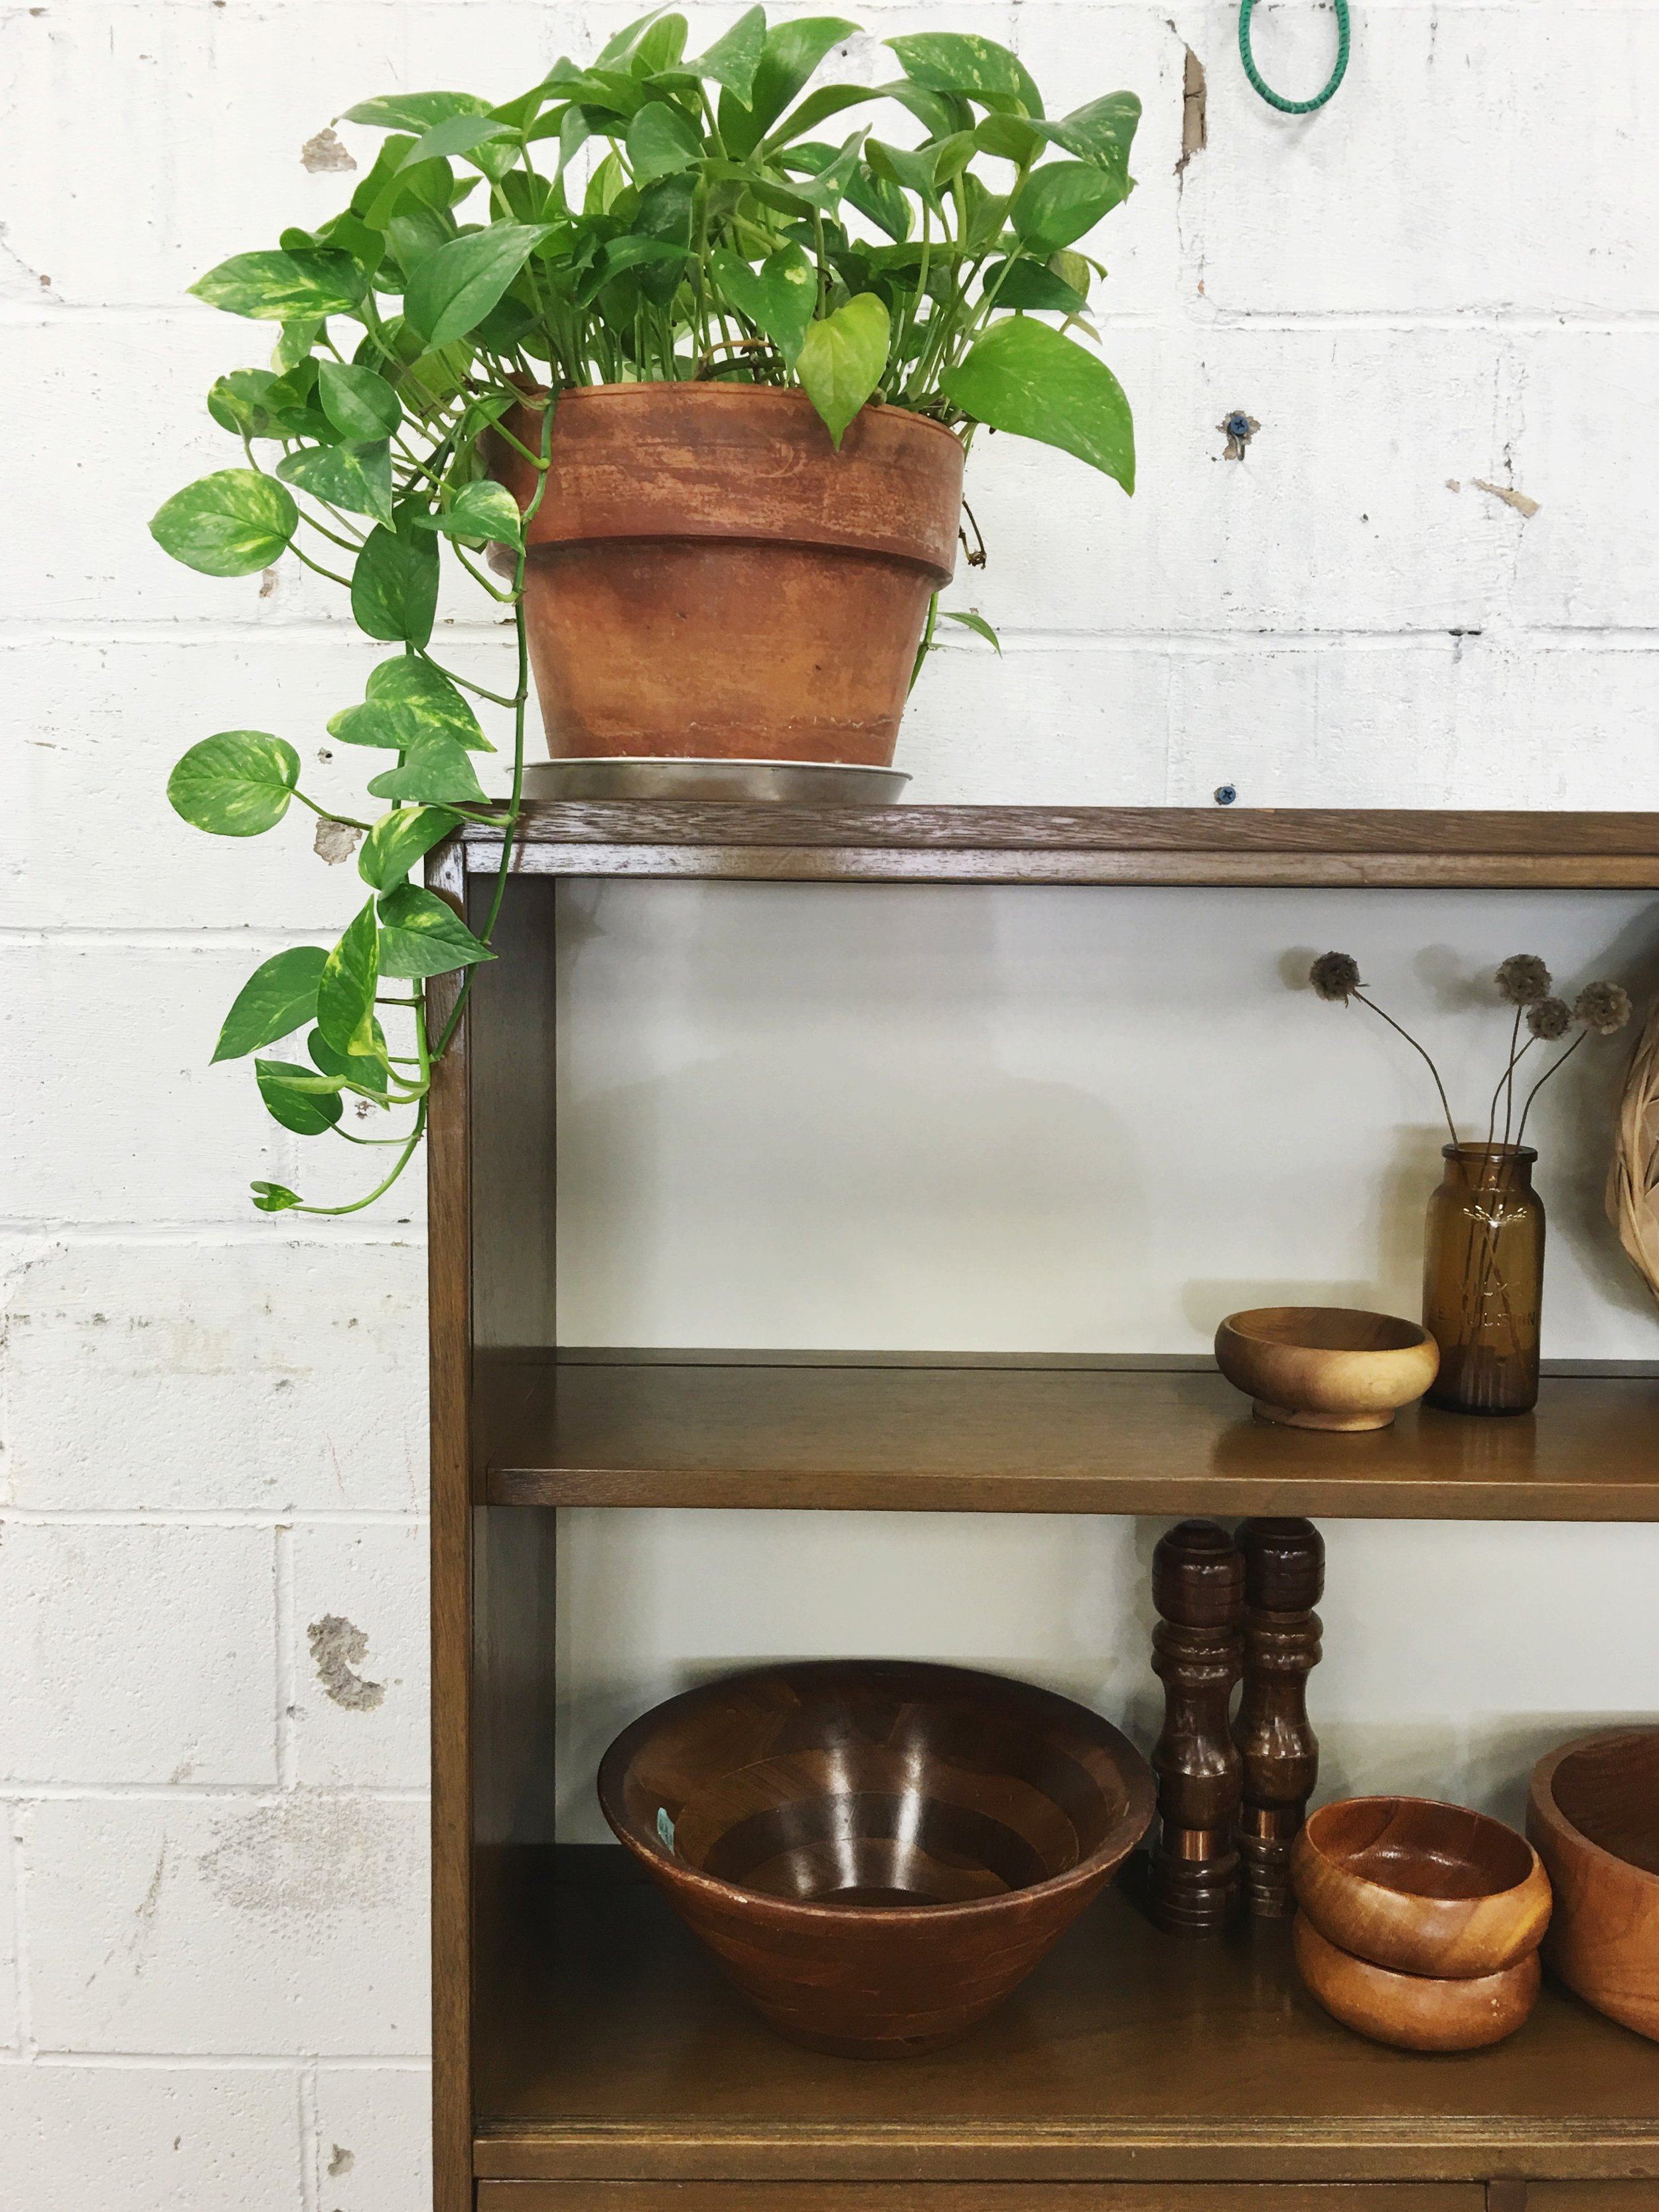 Our shop philodendron makes appearances in our styled shoots